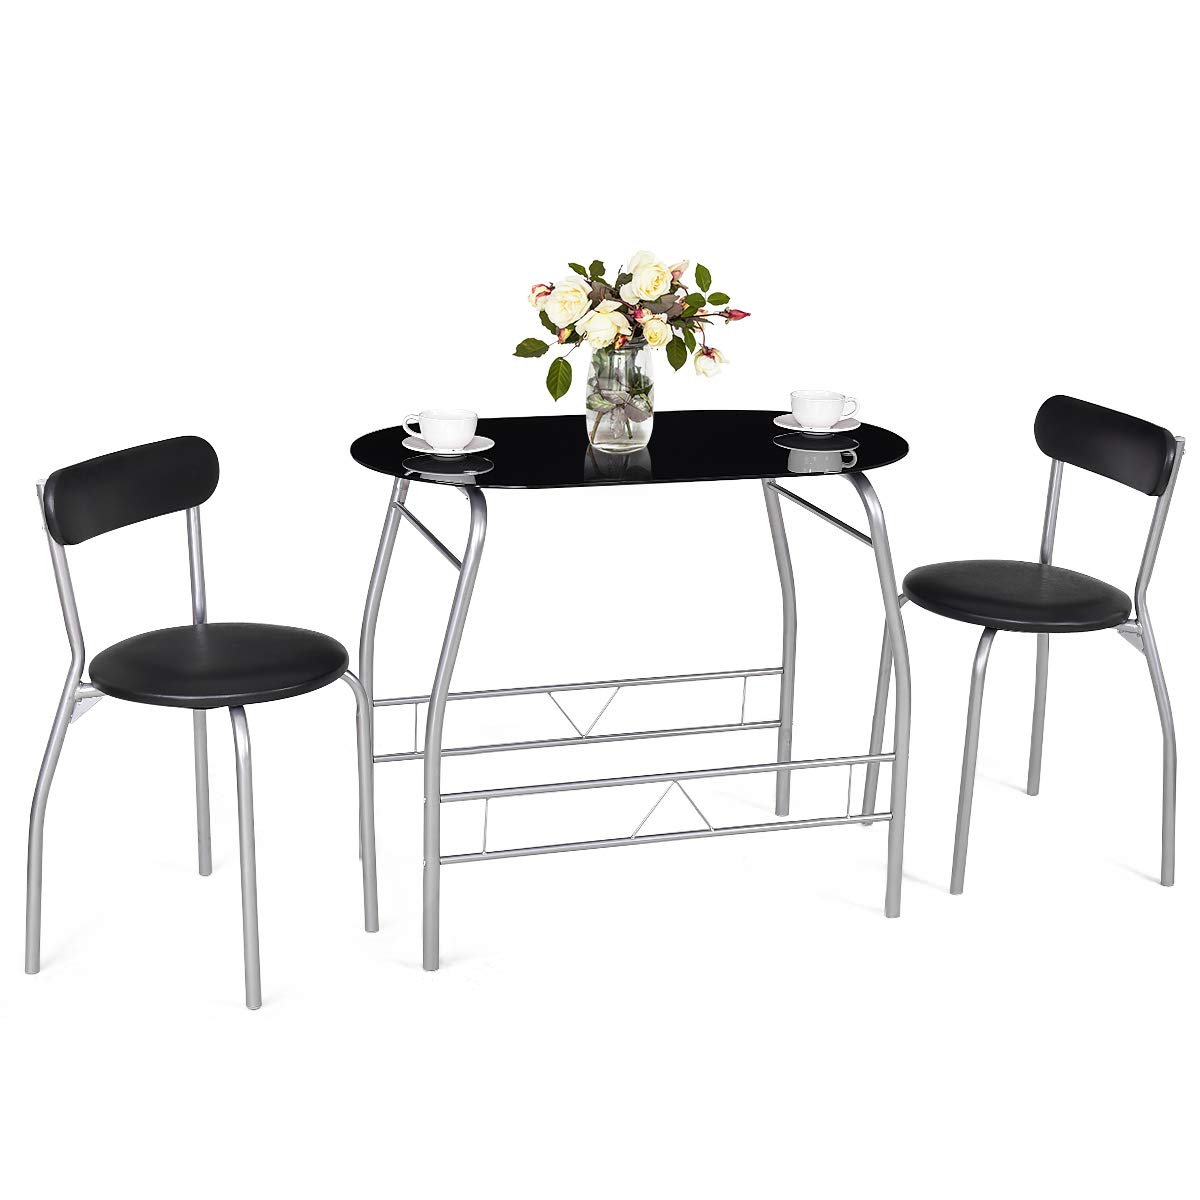 Trendy 3 Pieces Dining Tables And Chair Set With Tangkula 3 Piece Dining Set Modern Metal Frame Glass Top Table And 2 Chairs  Set Home Kitchen Bistro Pub Breakfast Furniture, Black And Silver (View 25 of 30)